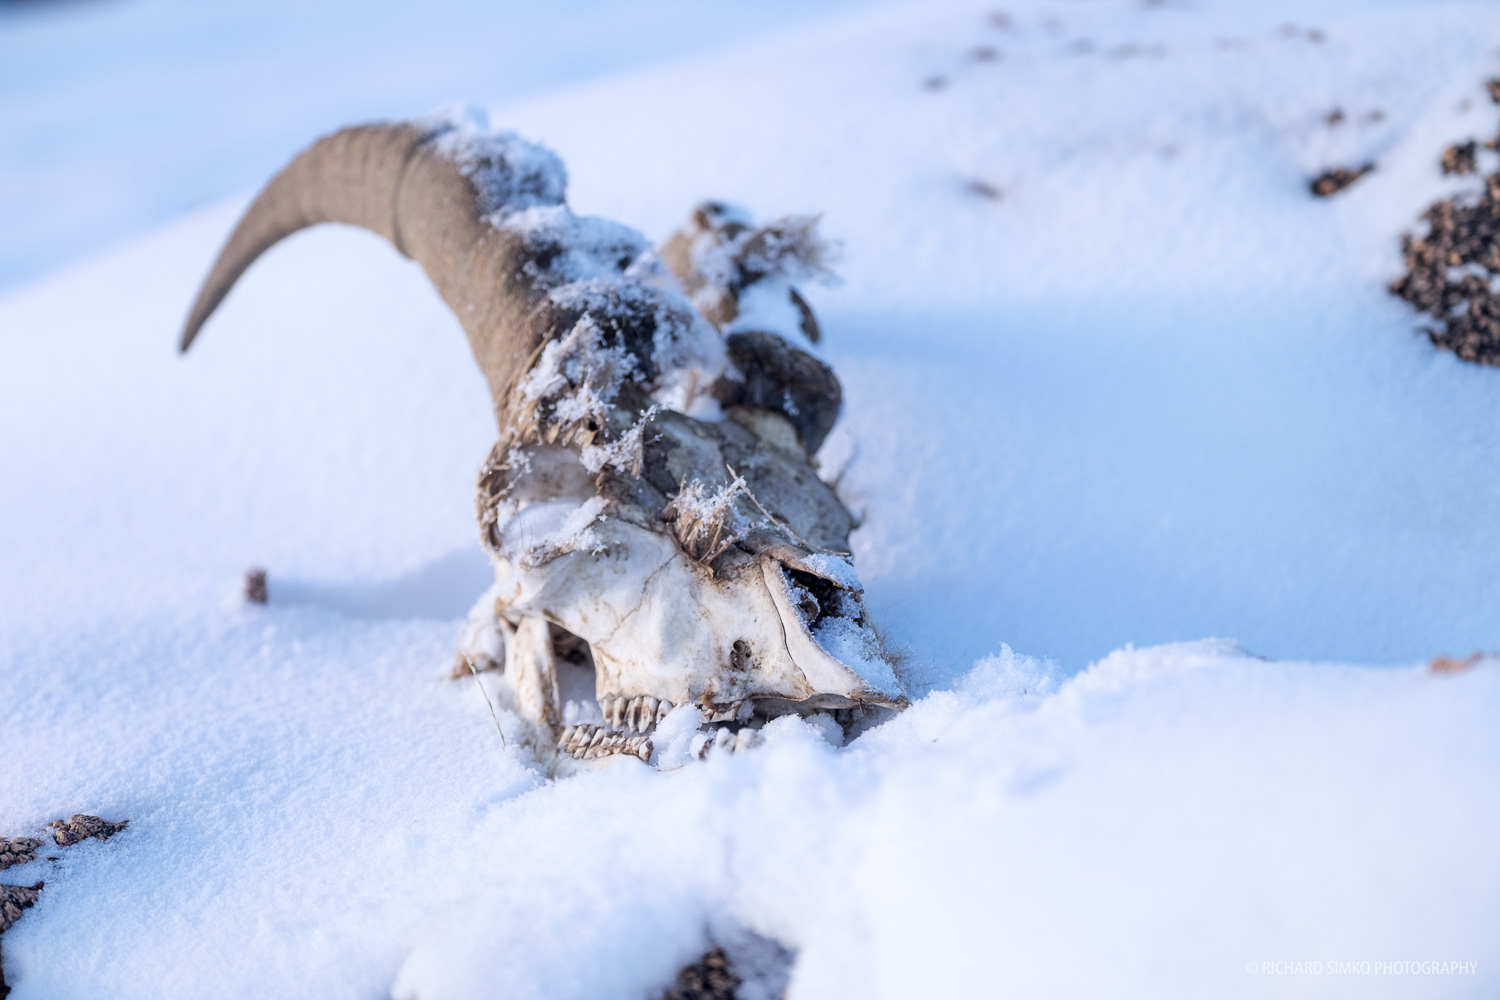 Bones, skulls or entire skeletons are quite common in the step. Livestock often falls victim to wolves, harsh terrain or weather.